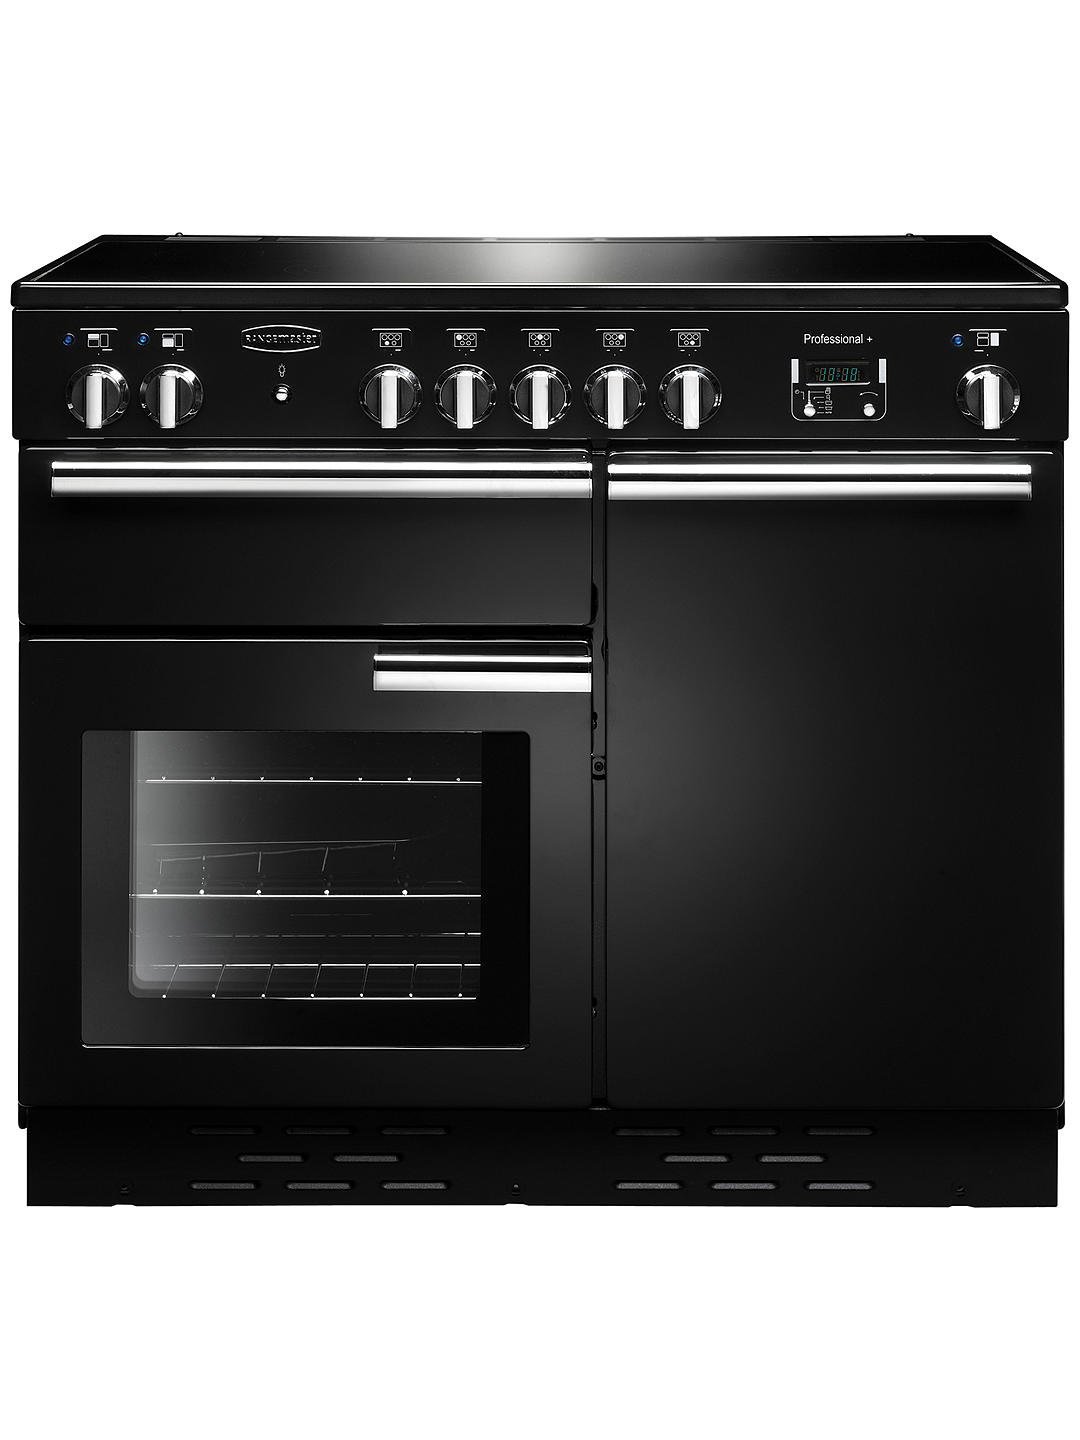 Buy Rangemaster Professional + 100 Induction Hob Range Cooker, Black/Chrome Trim Online at johnlewis.com